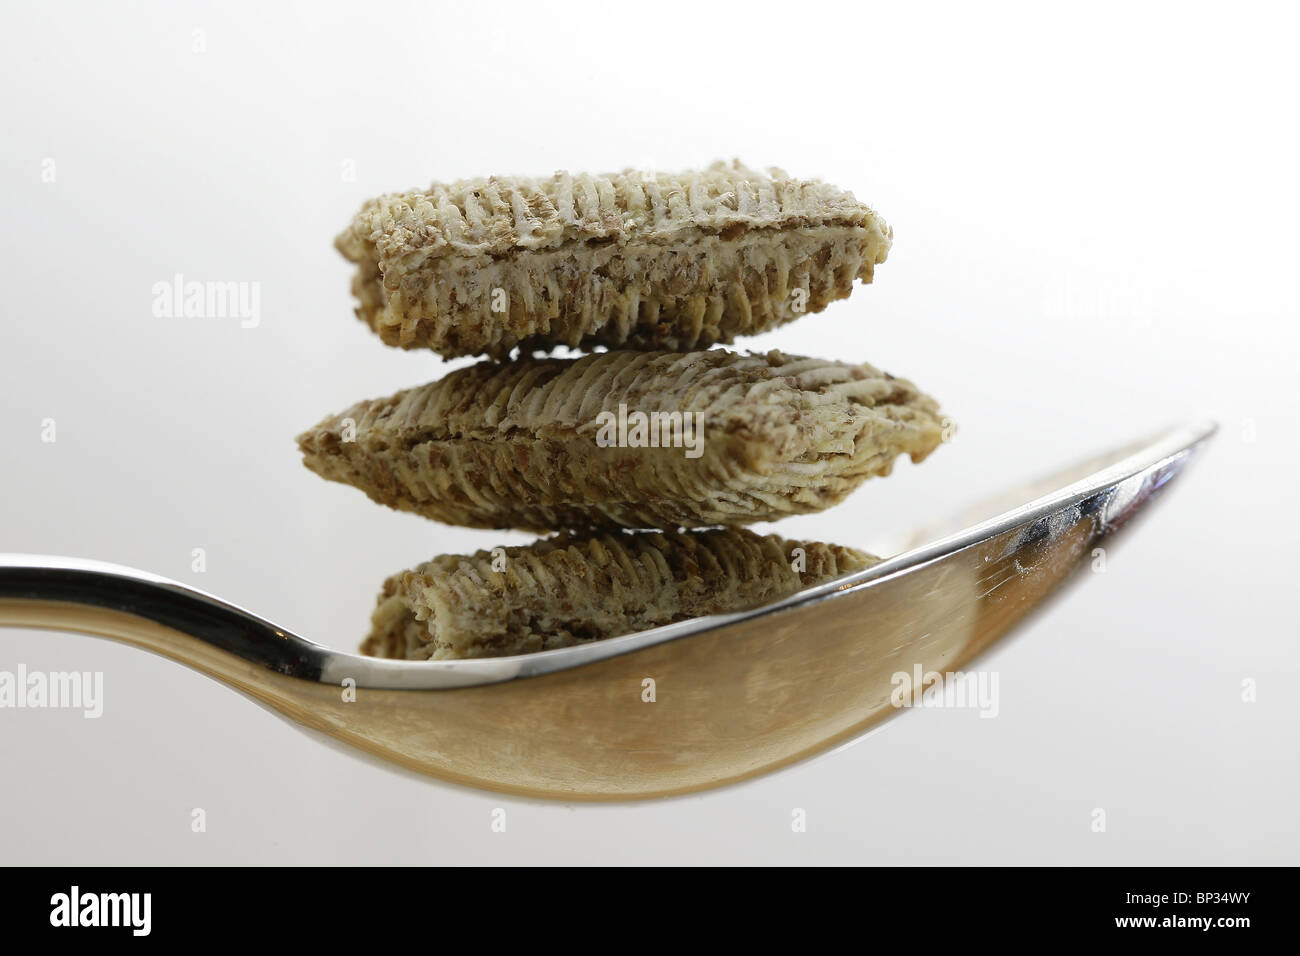 Three Bitesize Shredded Wheat's balanced in a silver spoon.  Picture by James Boardman. - Stock Image